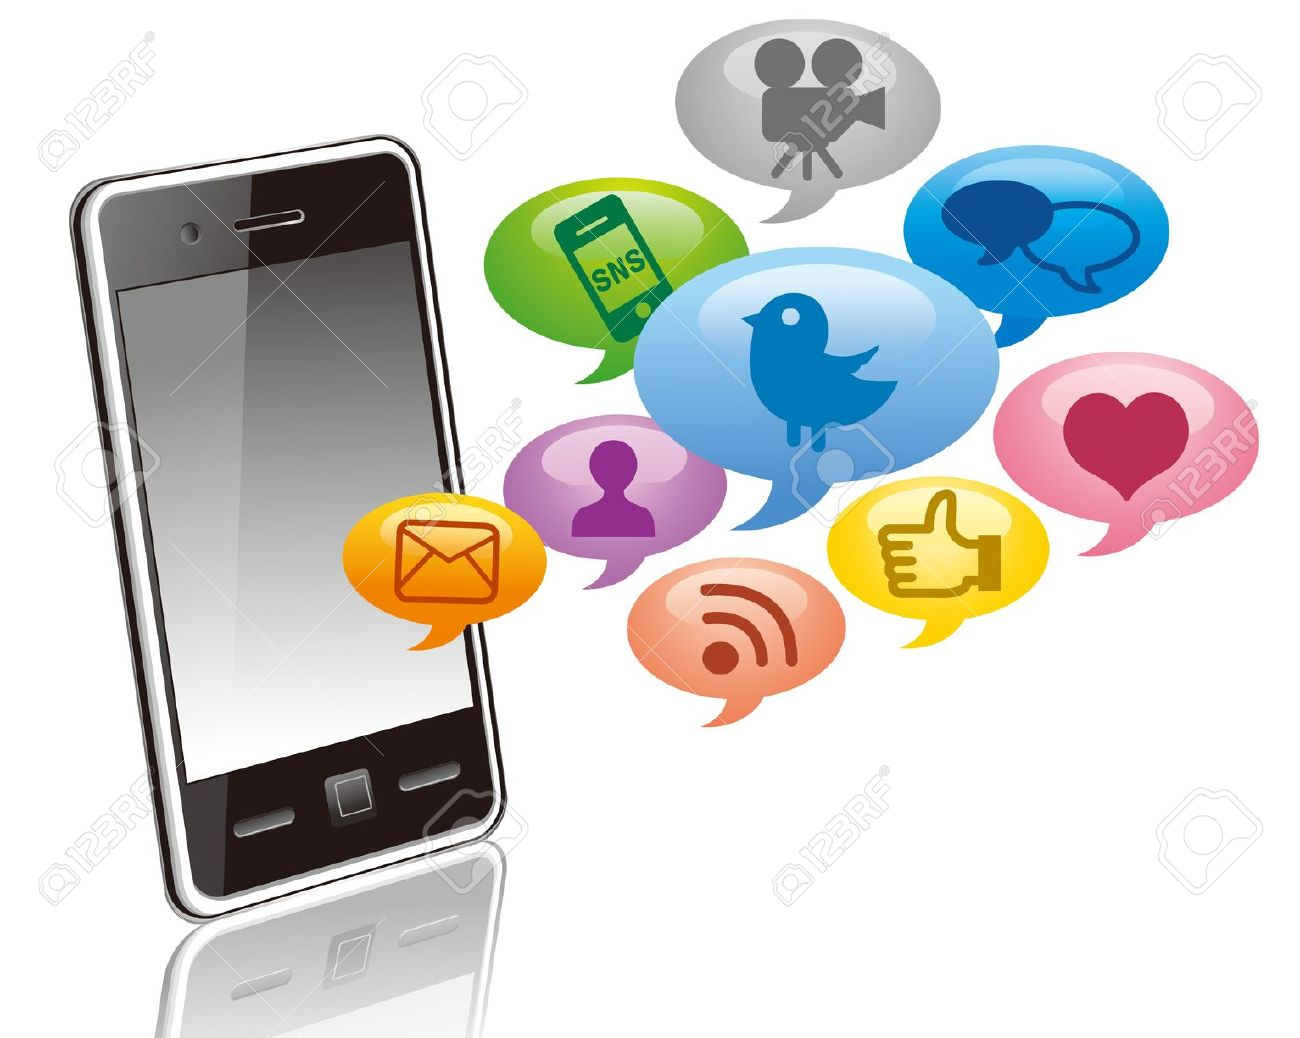 Social media cell phone photo clipart image transparent library Social Media On Smartphone Royalty Free Cliparts, Vectors, And ... image transparent library